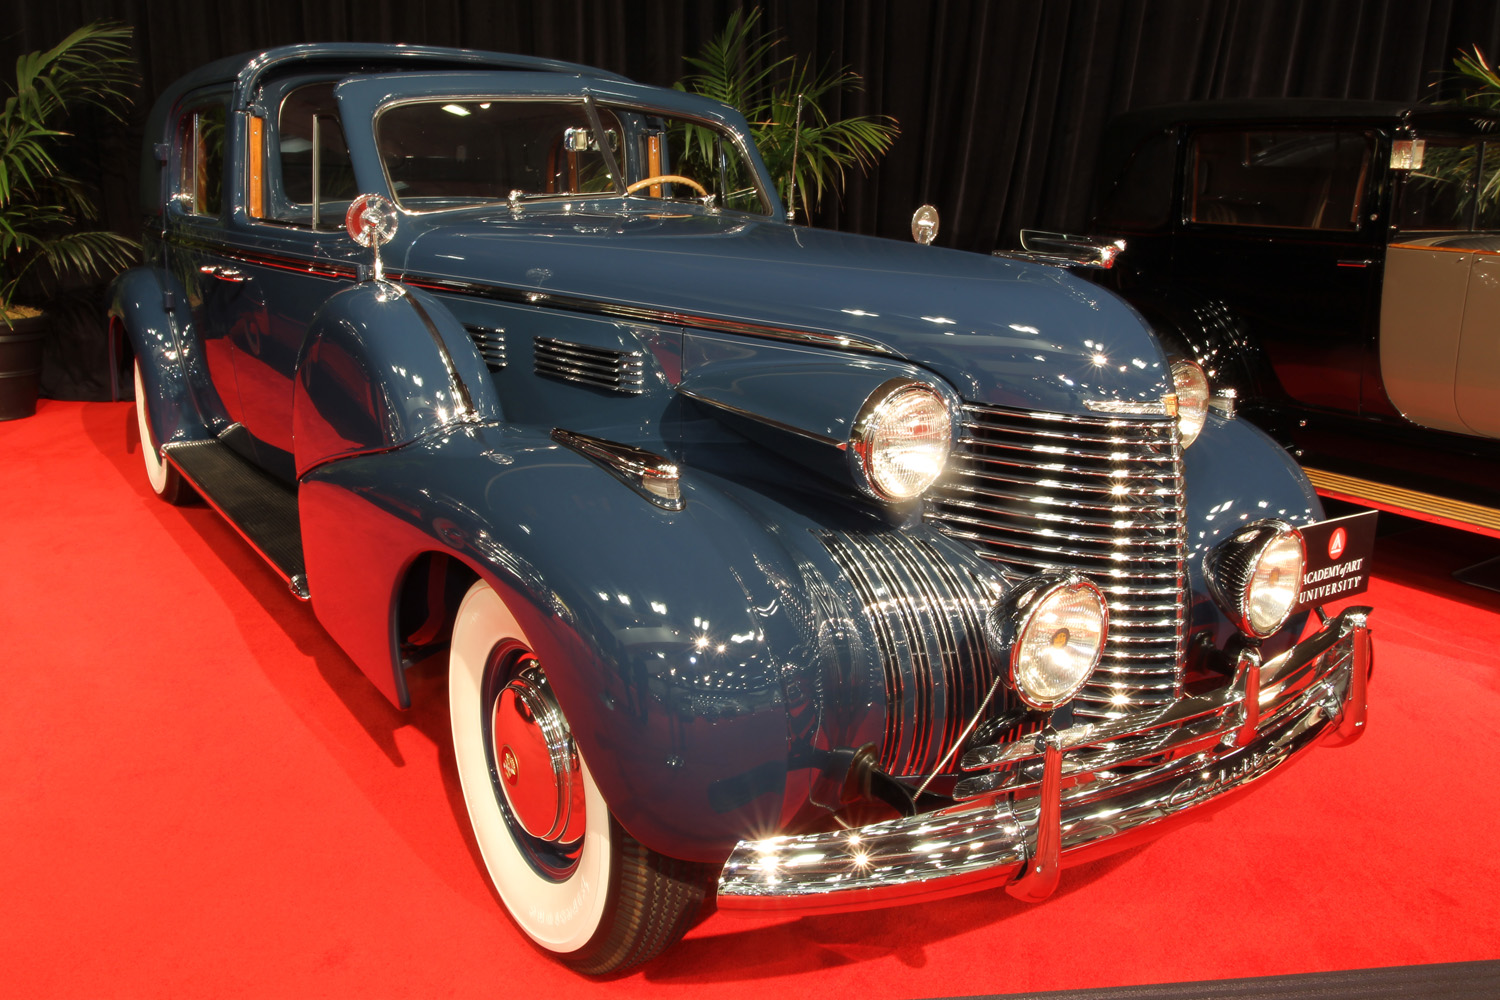 1940 Cadillac Series 75 Town Car by Fleetwood